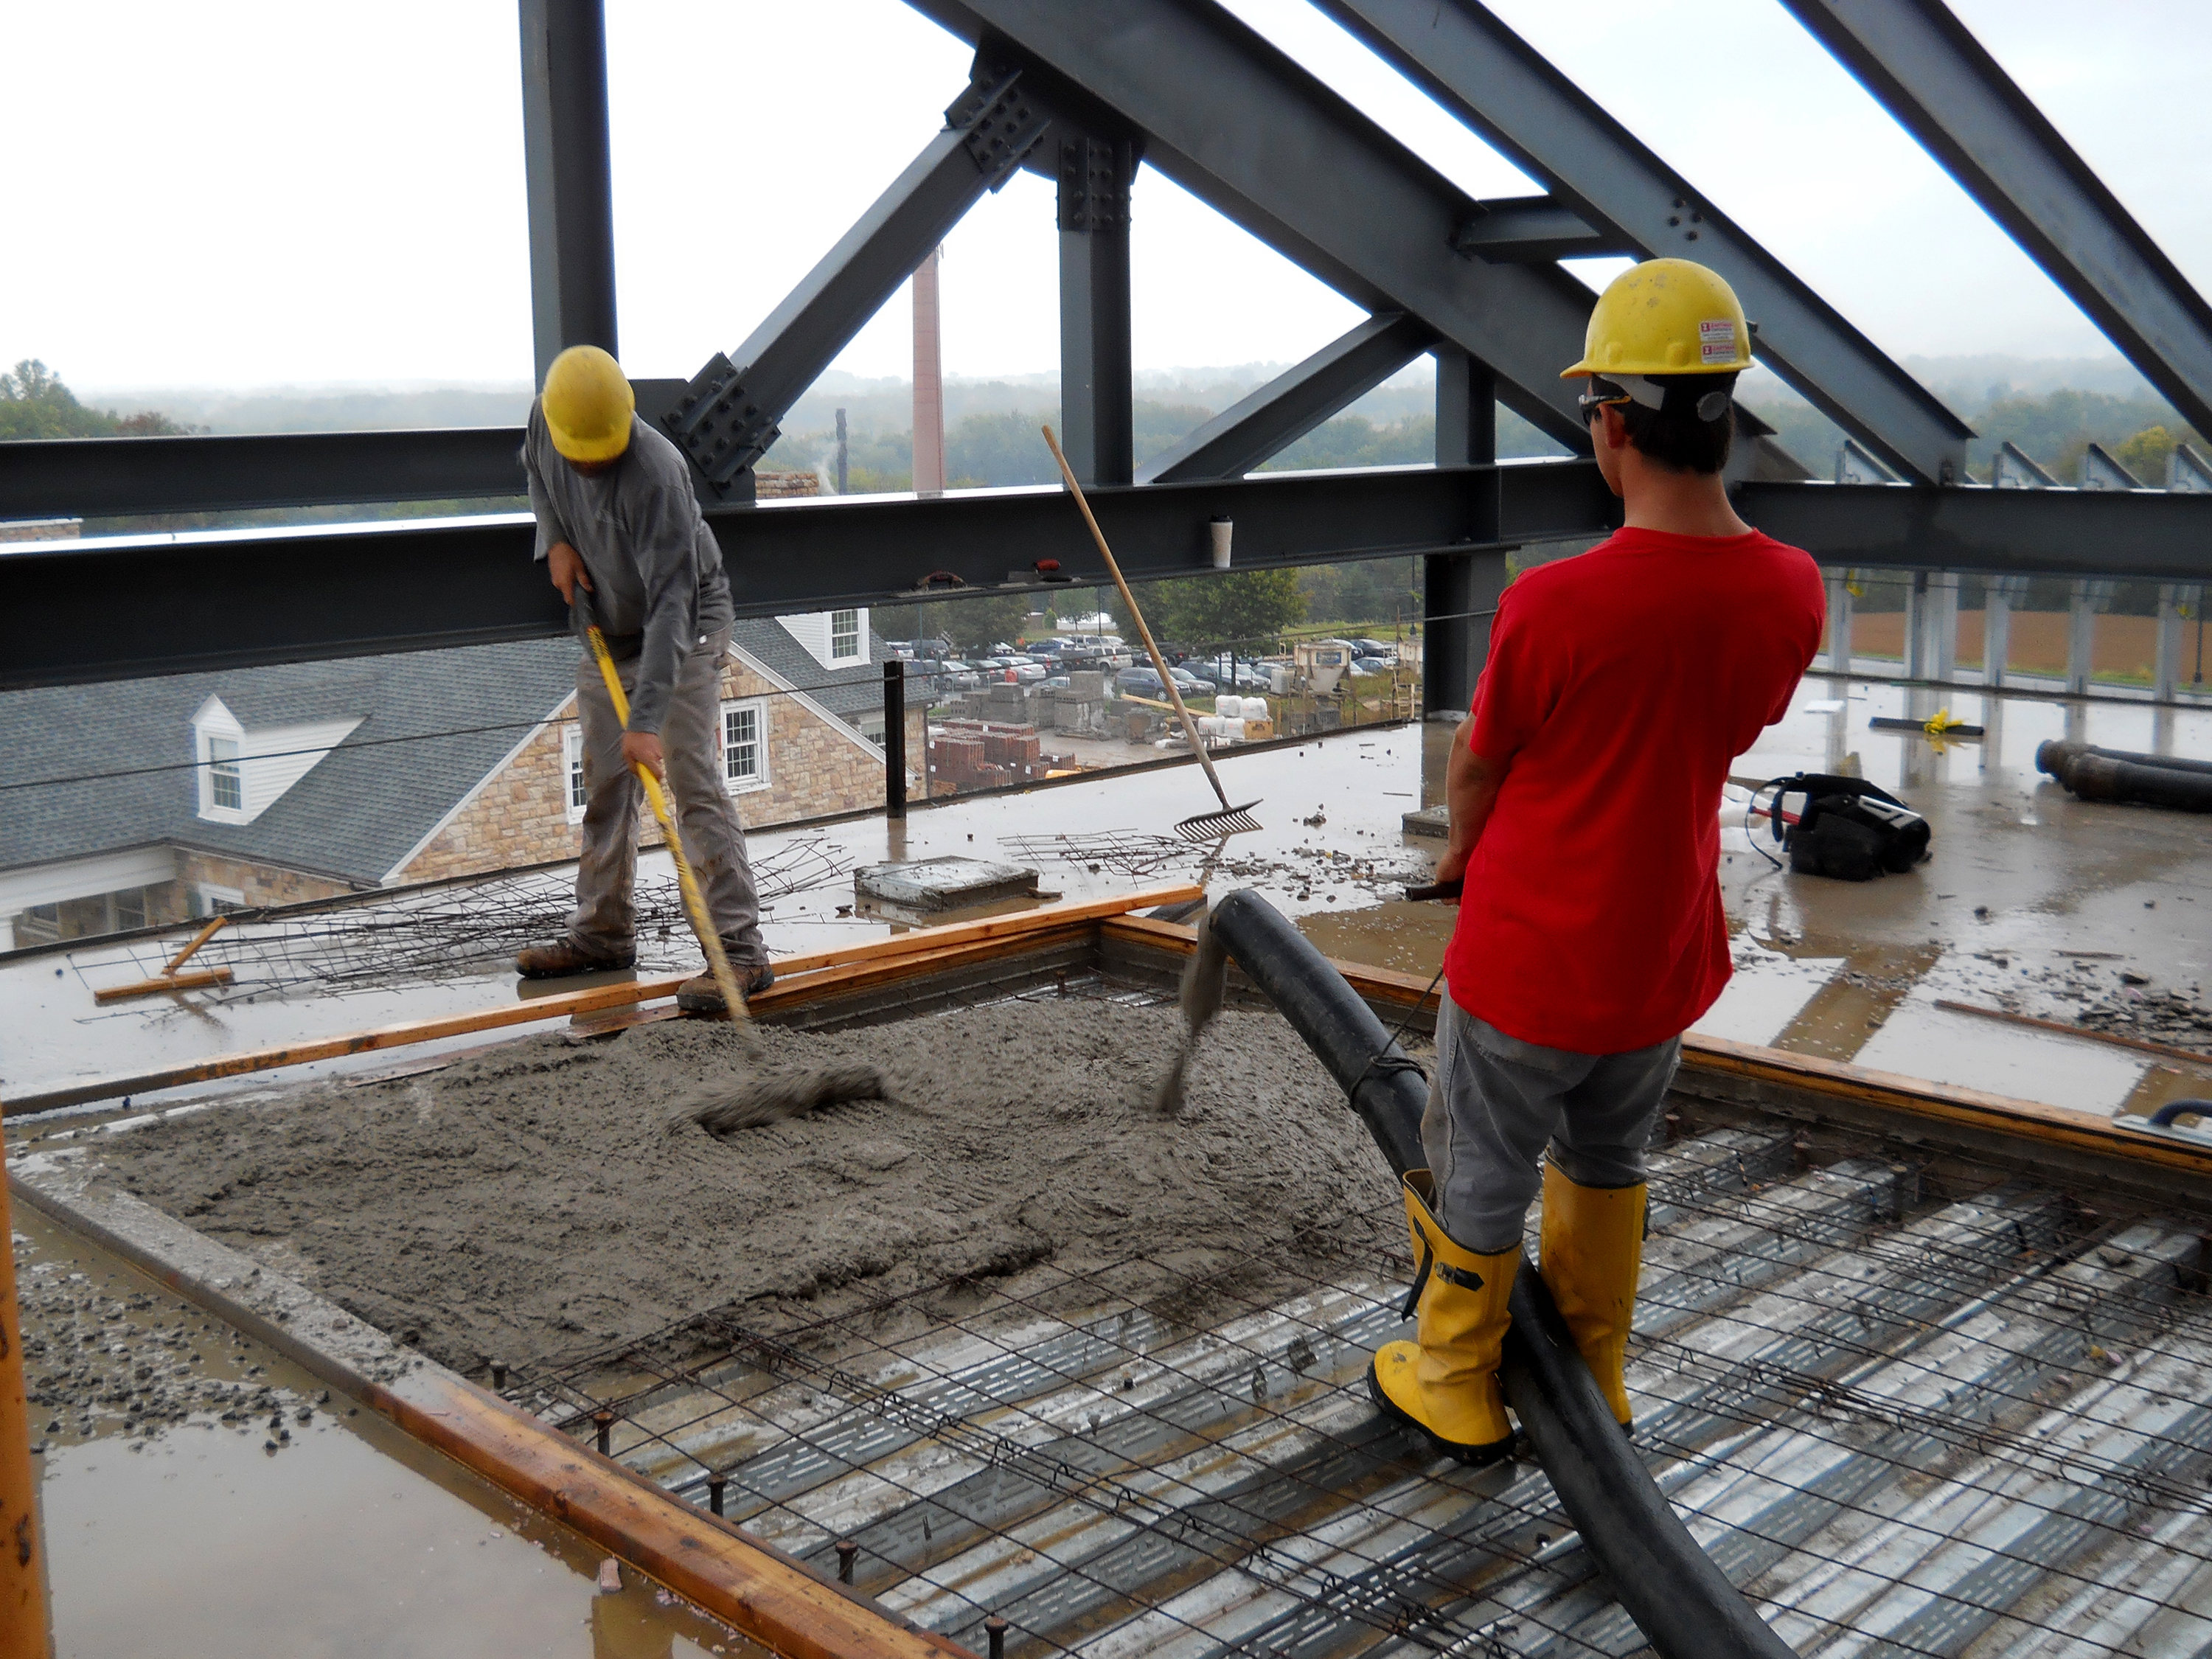 The Zartman team works on the Academic West building at Bucknell University.